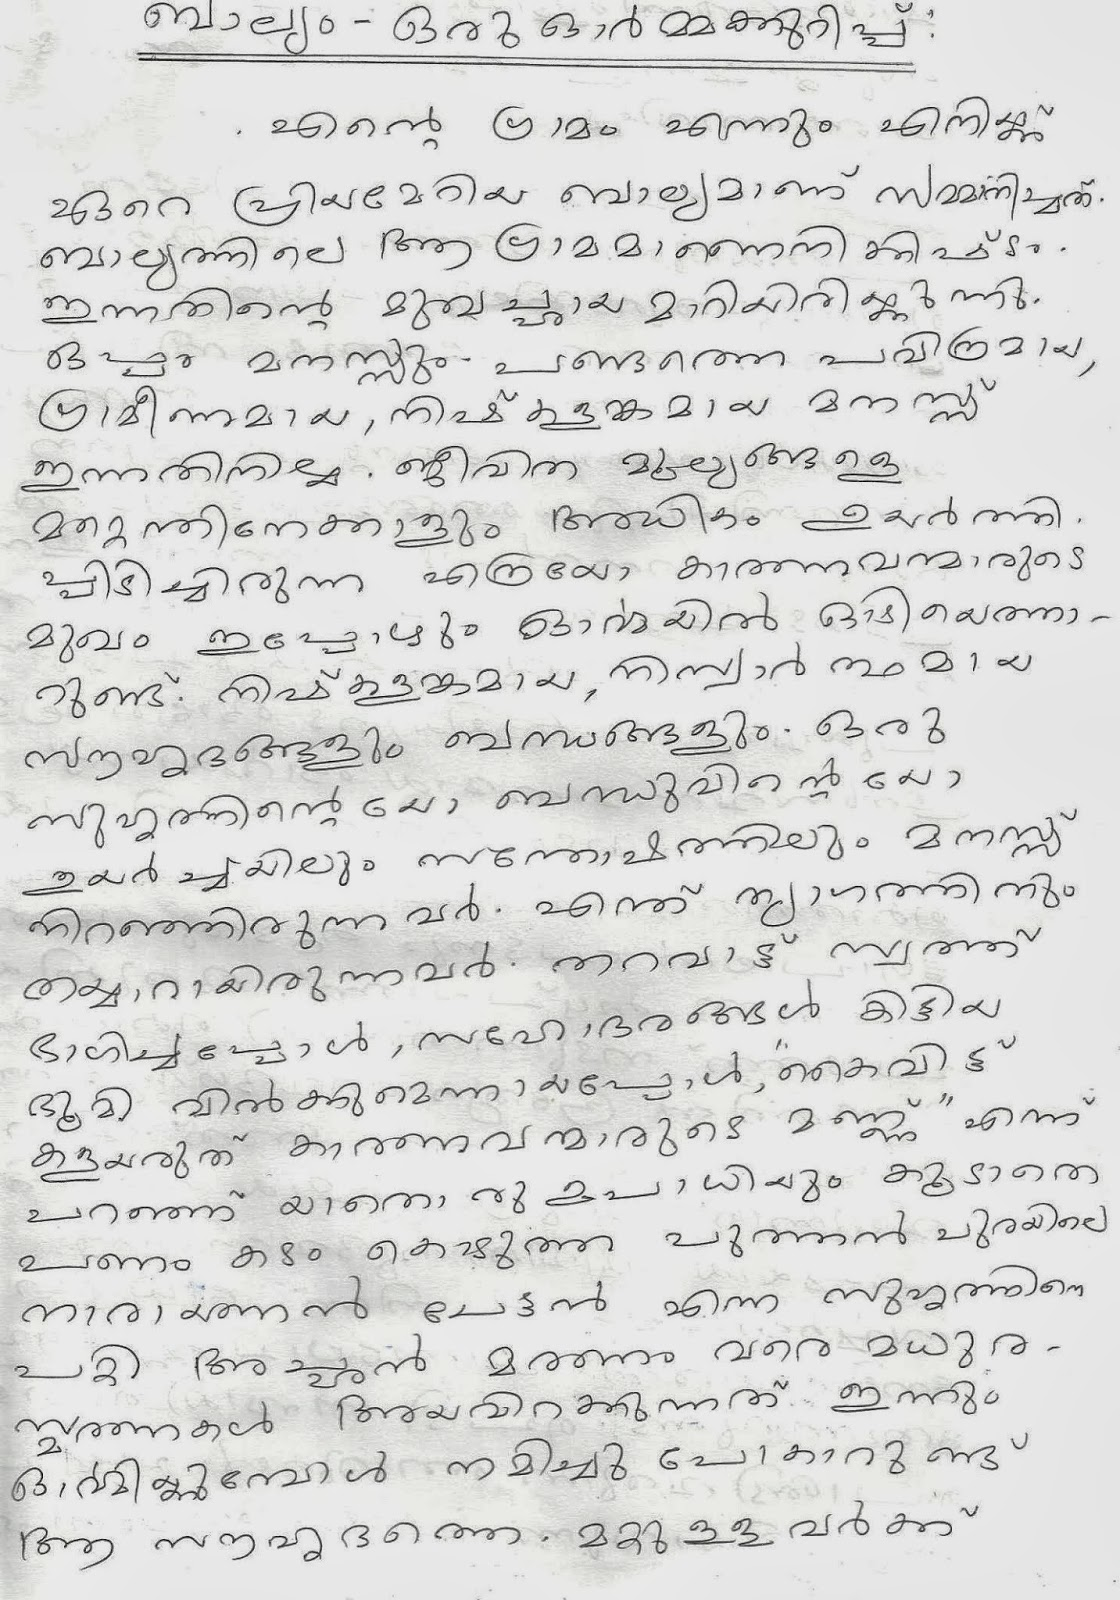 my childhood essay in malayalam social service essay social work hd image of my thoughts and my literary world kerala village childhood memories